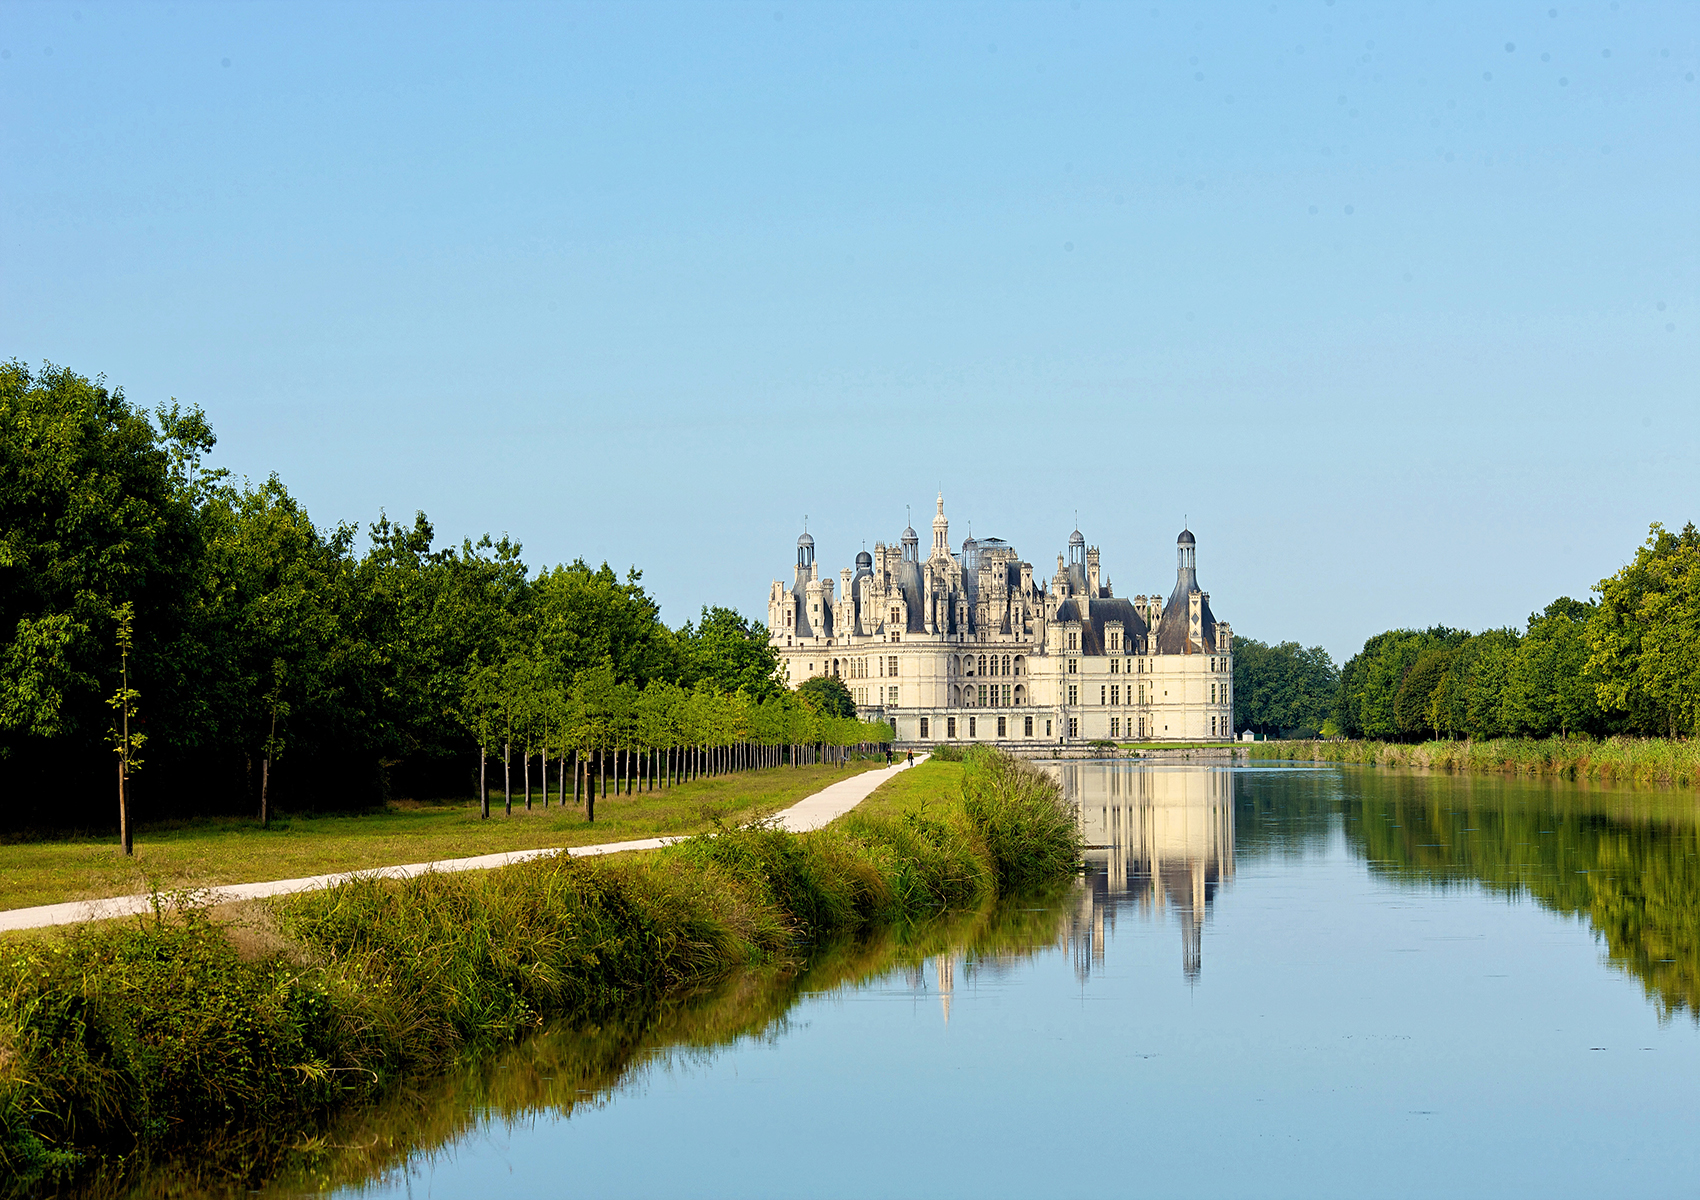 Loire Valley Castles Day Trip from Paris to Amboise, Chenonceau and Chambord